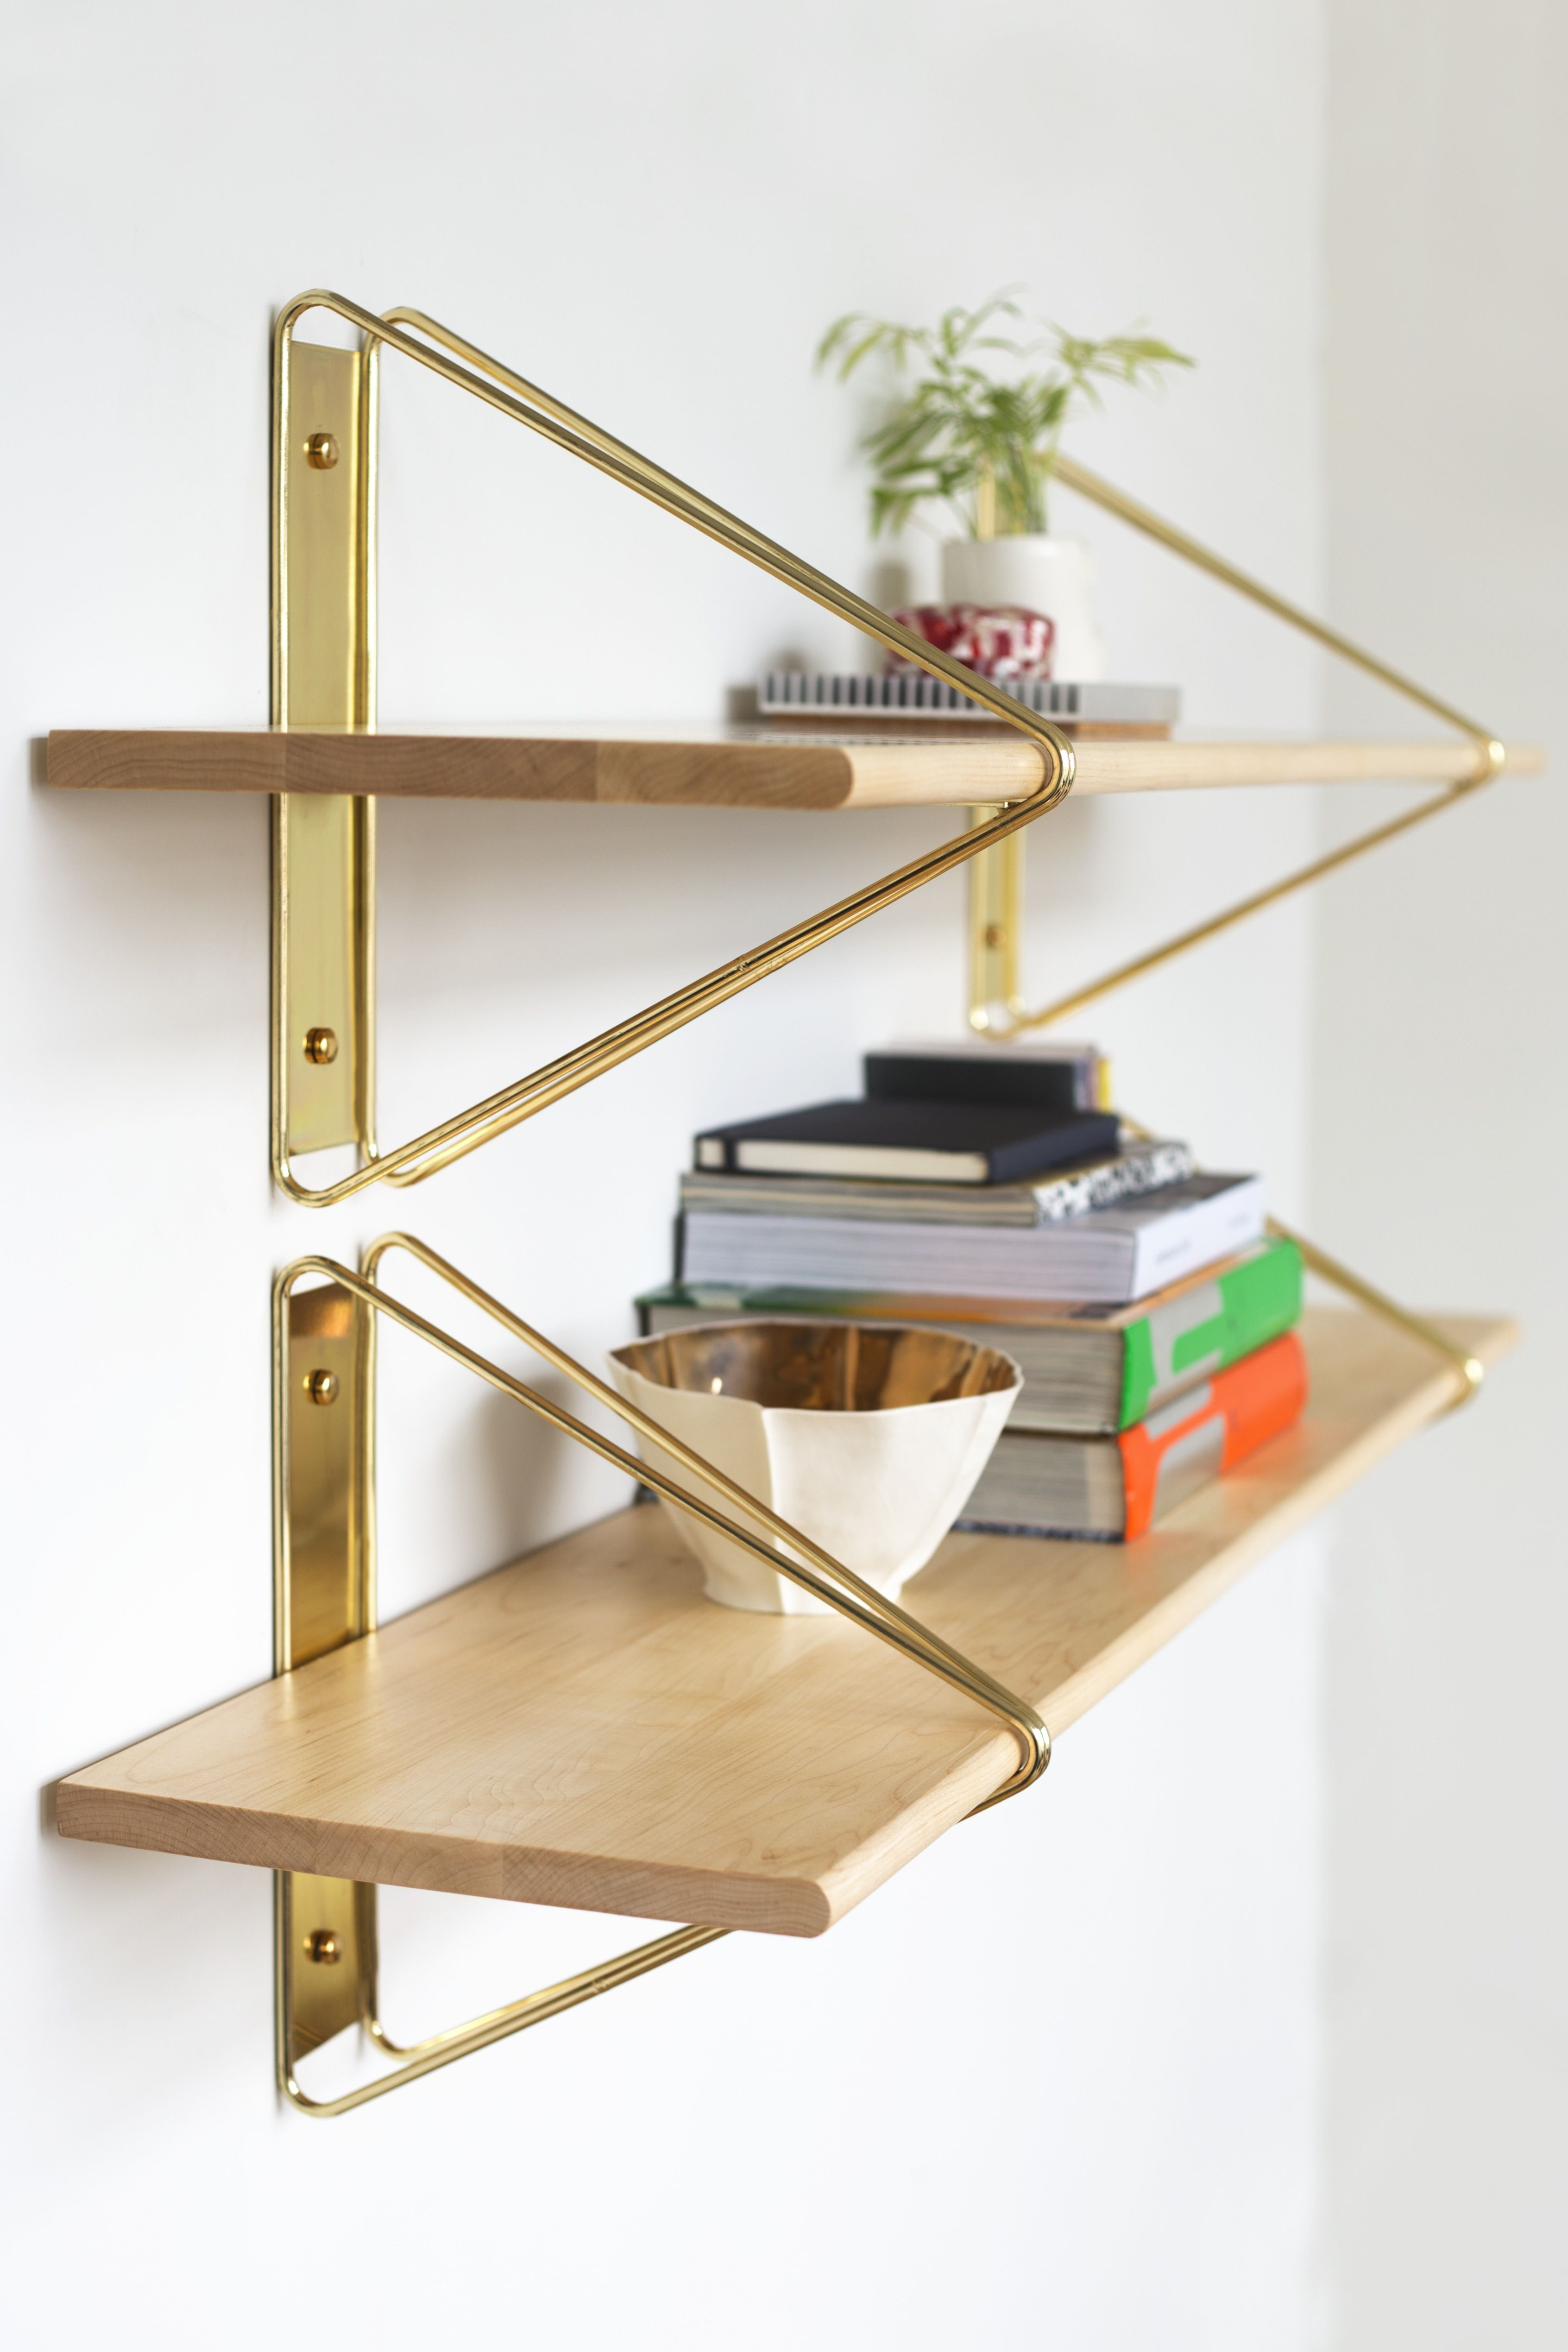 Exceptionnel Soudau0027s Strut Shelving Is A Modern Wall Mounted Shelving System Made From  Plated Steel Brackets And Hardwood Shelves. The Shelving Units Can Be  Purchased At ...